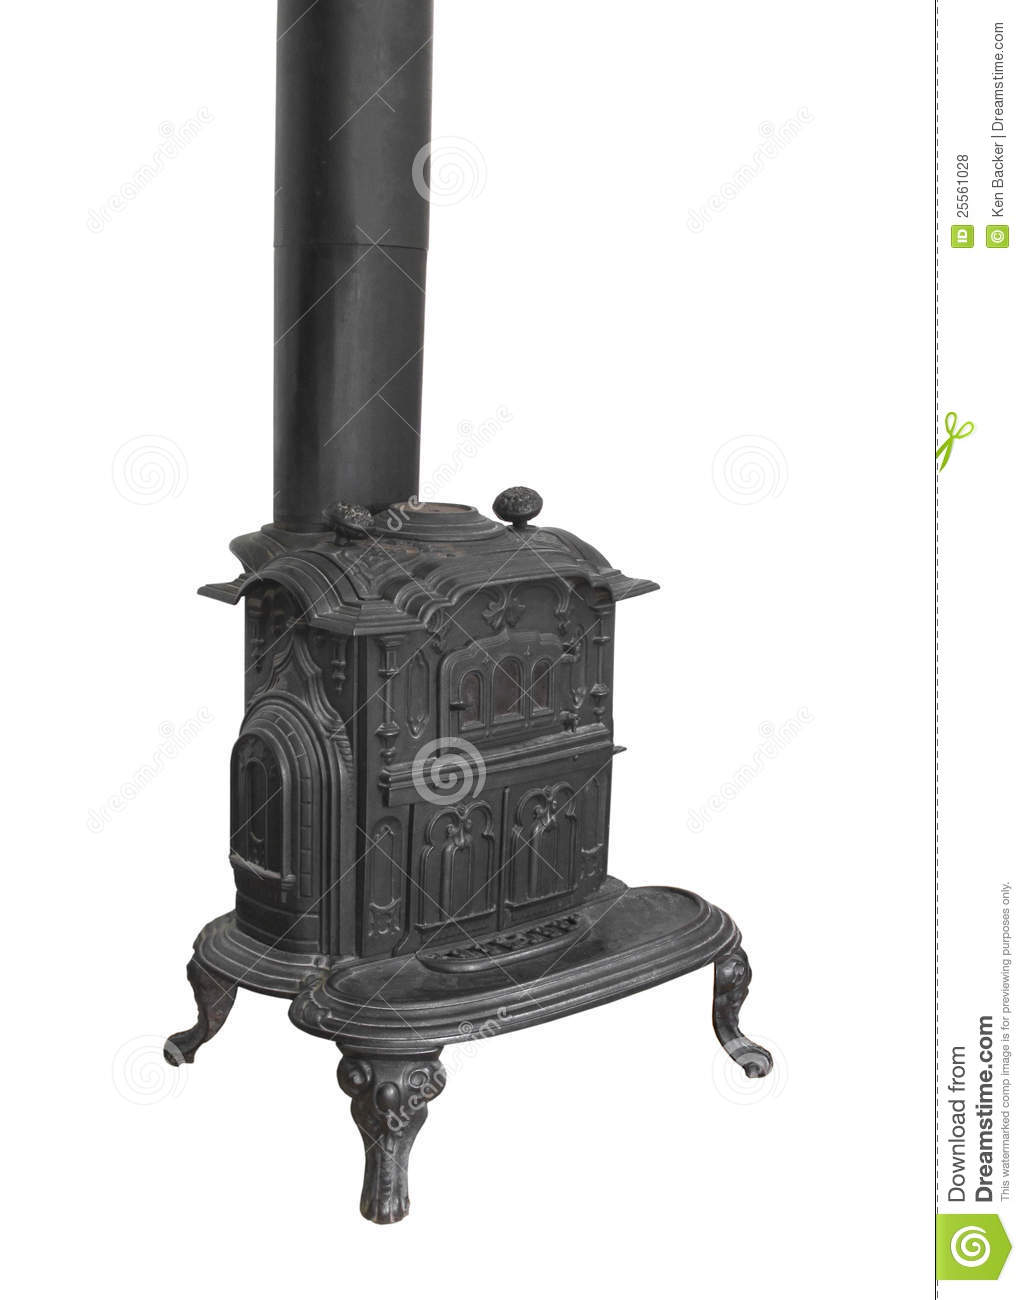 Images of Old Stove.